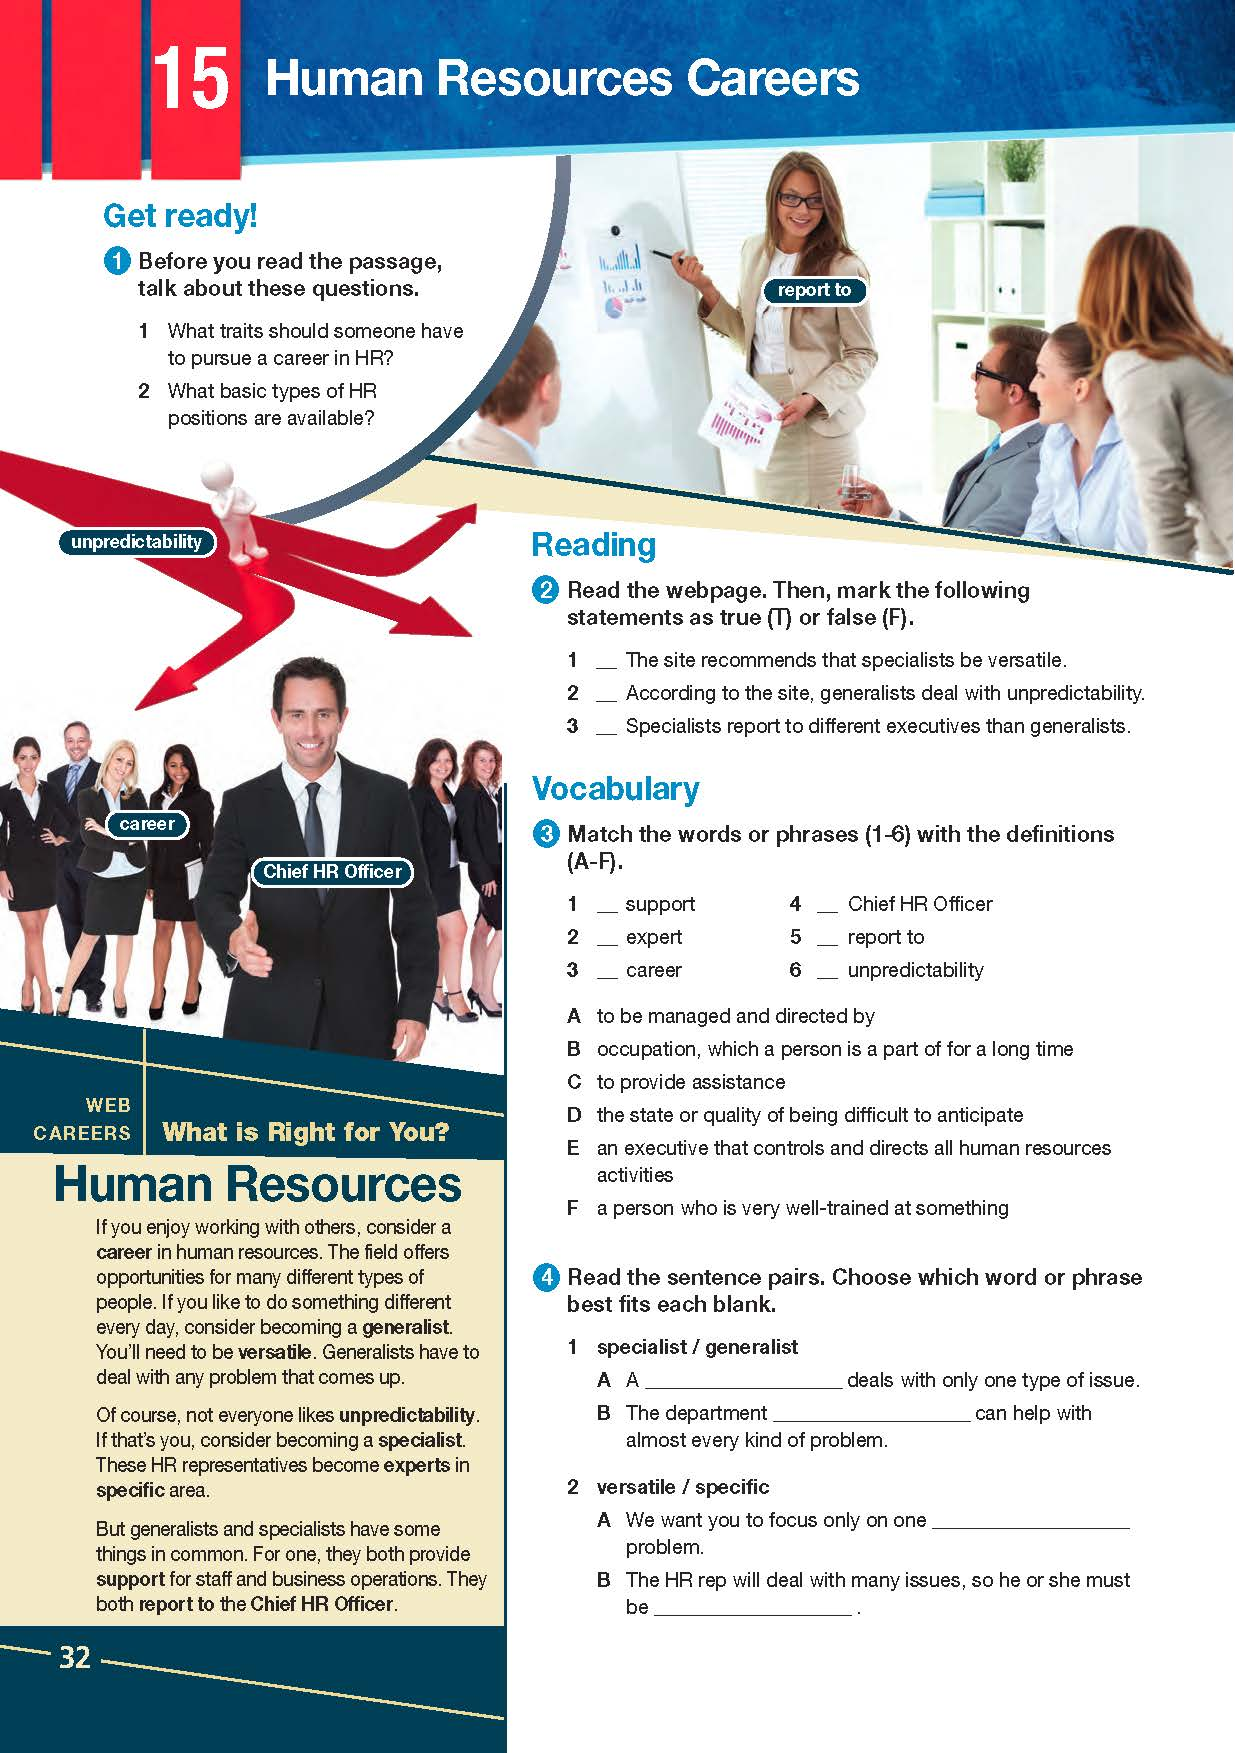 ESP English for Specific Purposes - Career Paths: Human Resources - Sample Page 3